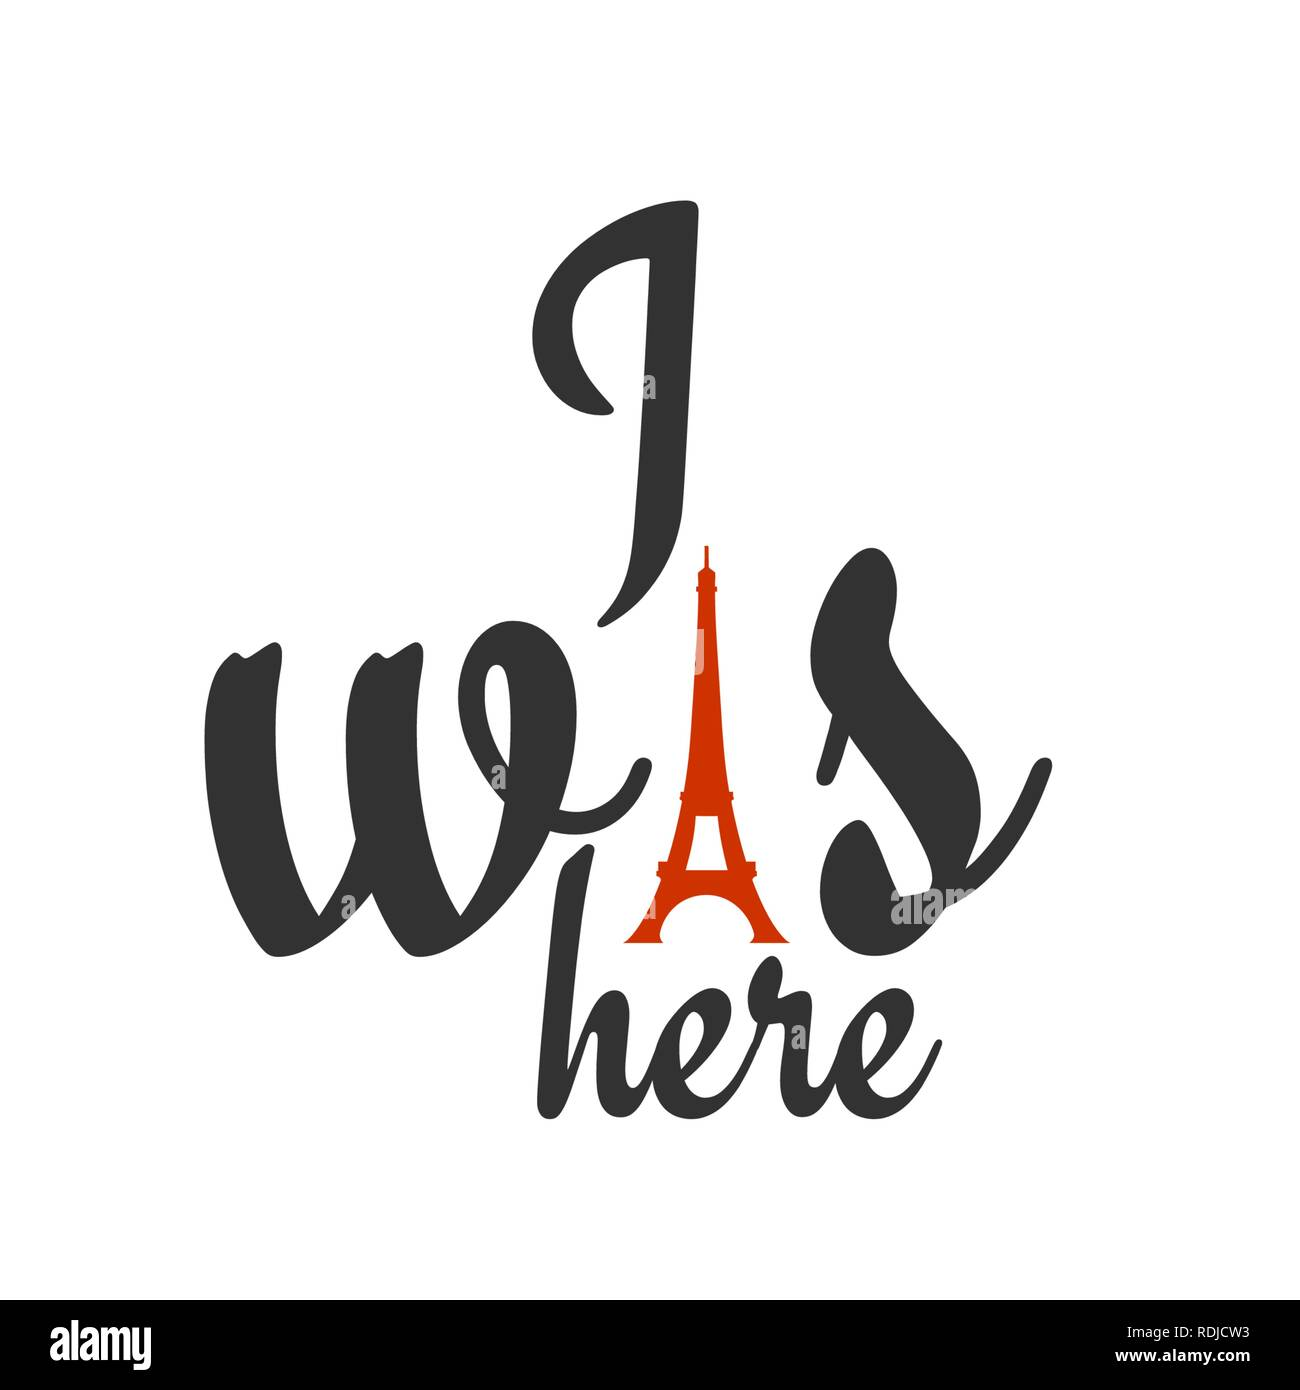 Paris architectural icon with lettering - Stock Vector